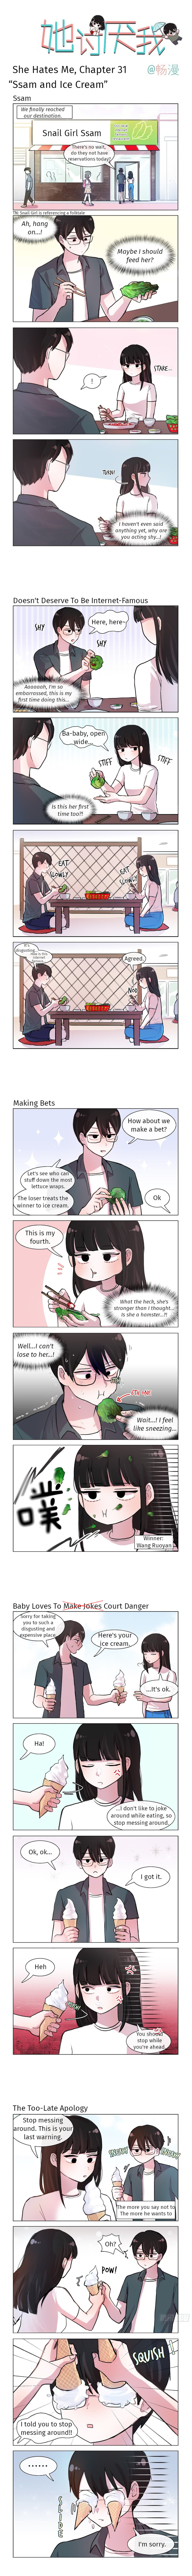 She Hates Me - chapter 31 - #1